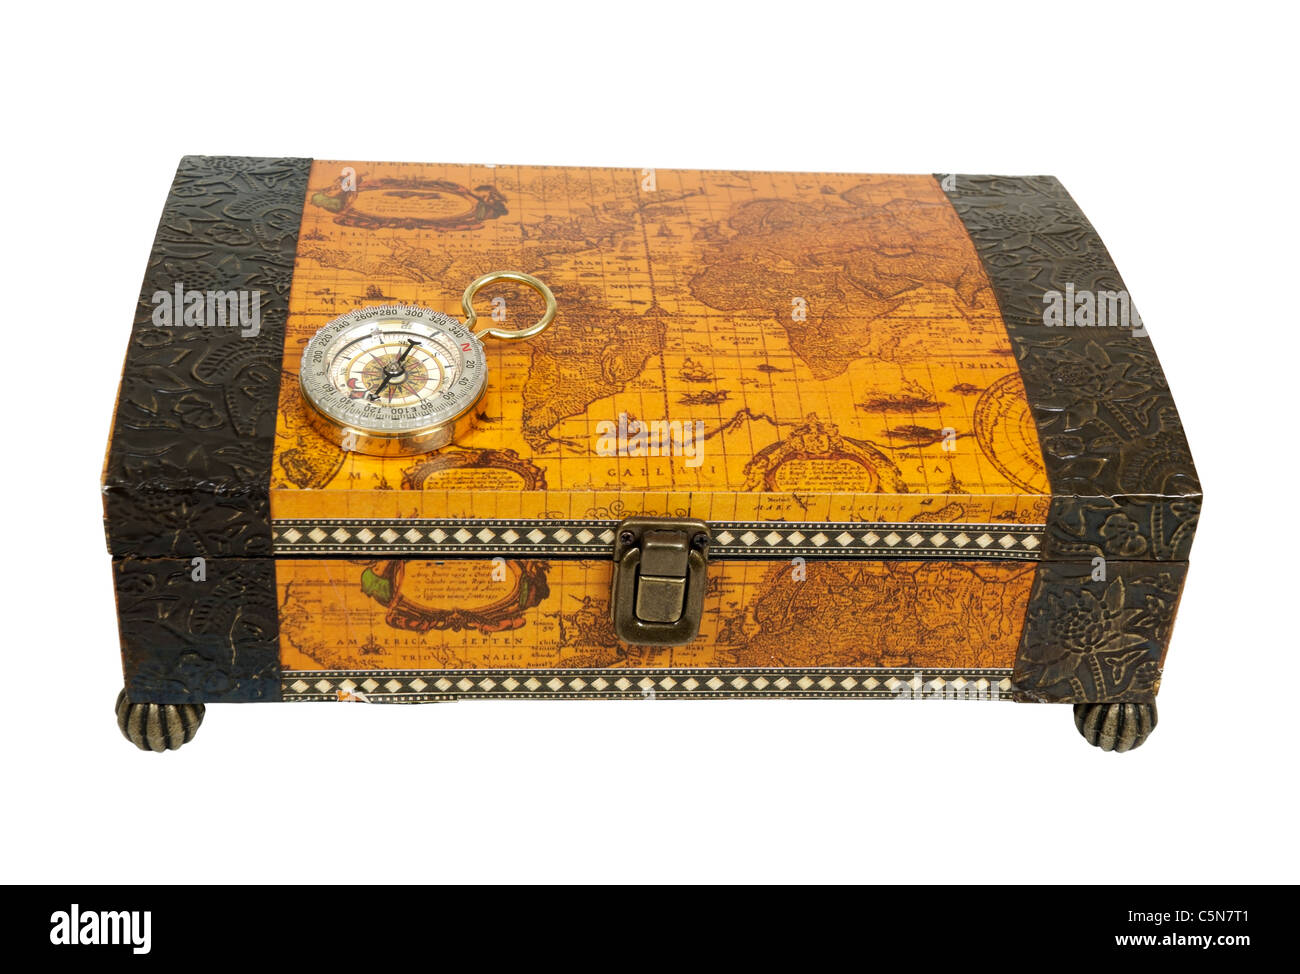 Travel box for storing vacation memories and a compass used for navigational purposes - path included - Stock Image